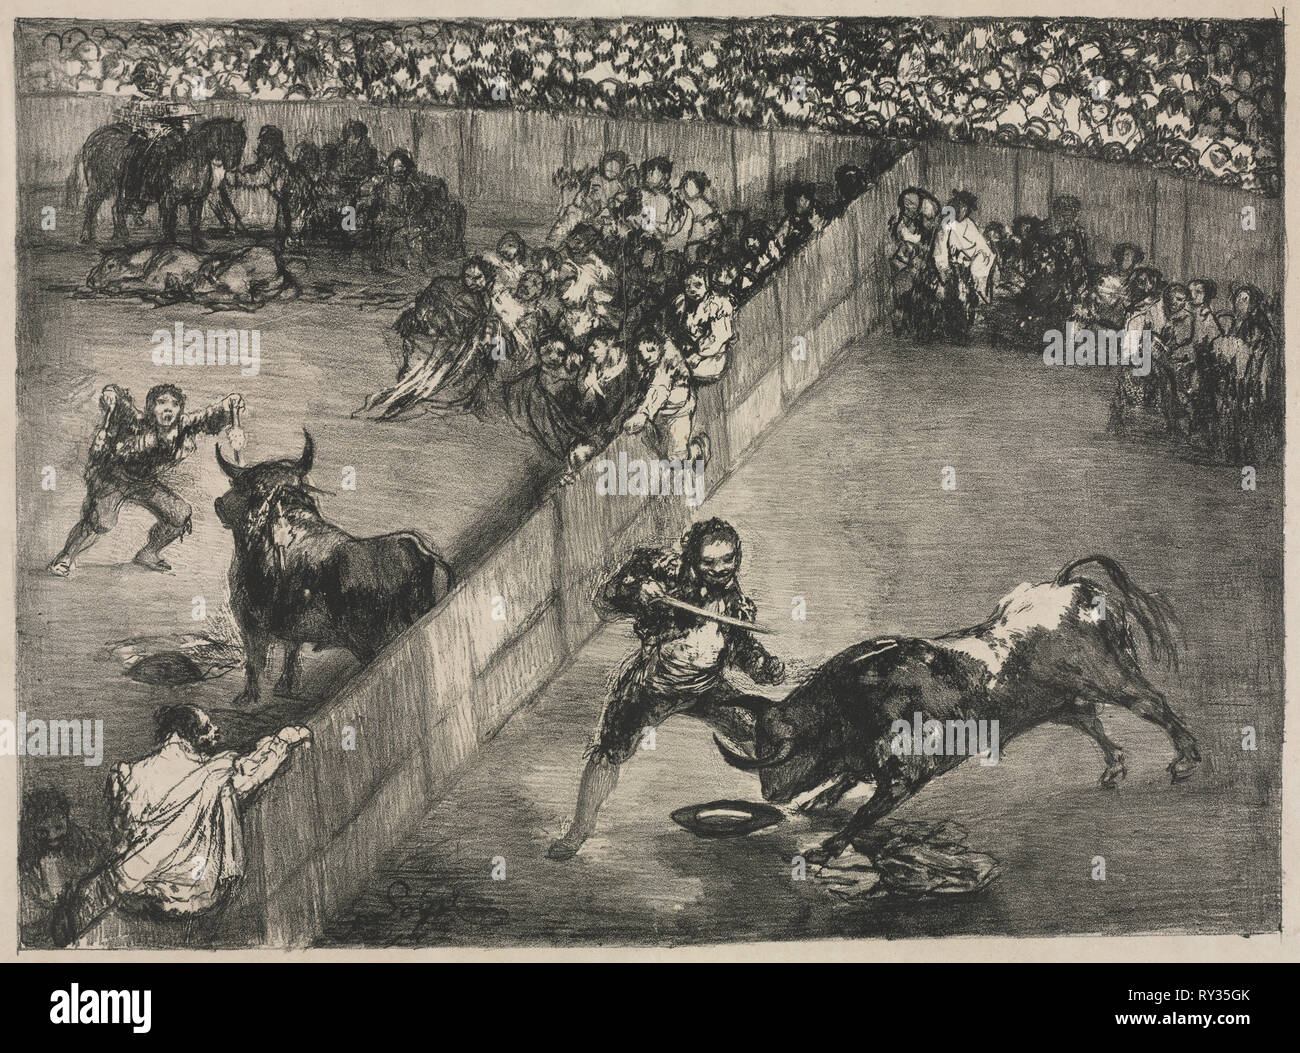 The Bulls of Bordeaux:  Bullfight in a Divided Ring, 1825. Francisco de Goya (Spanish, 1746-1828). Lithograph - Stock Image